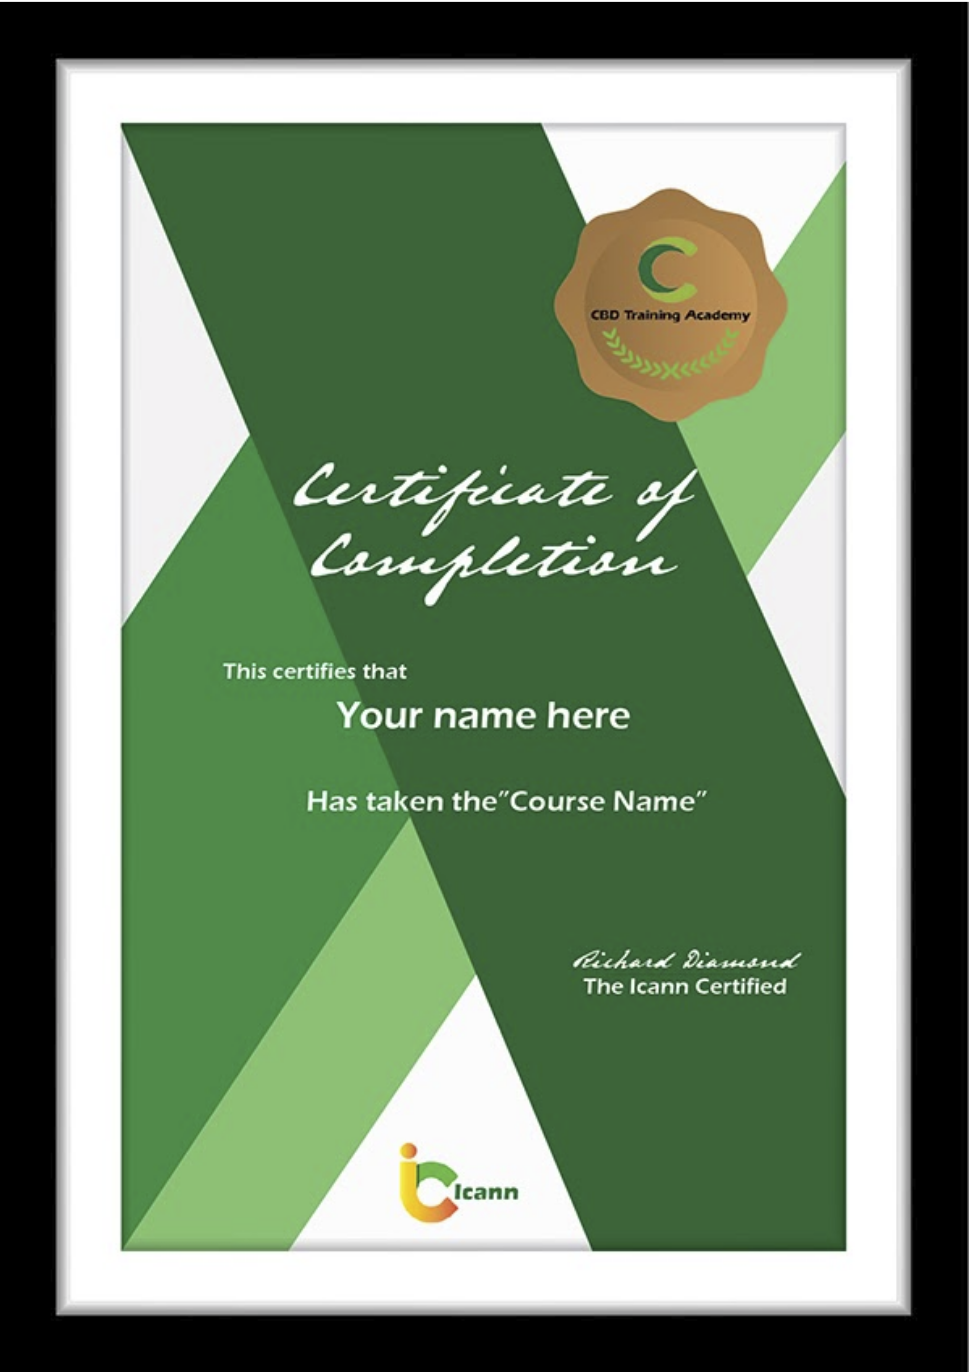 Training-certificate-credentials